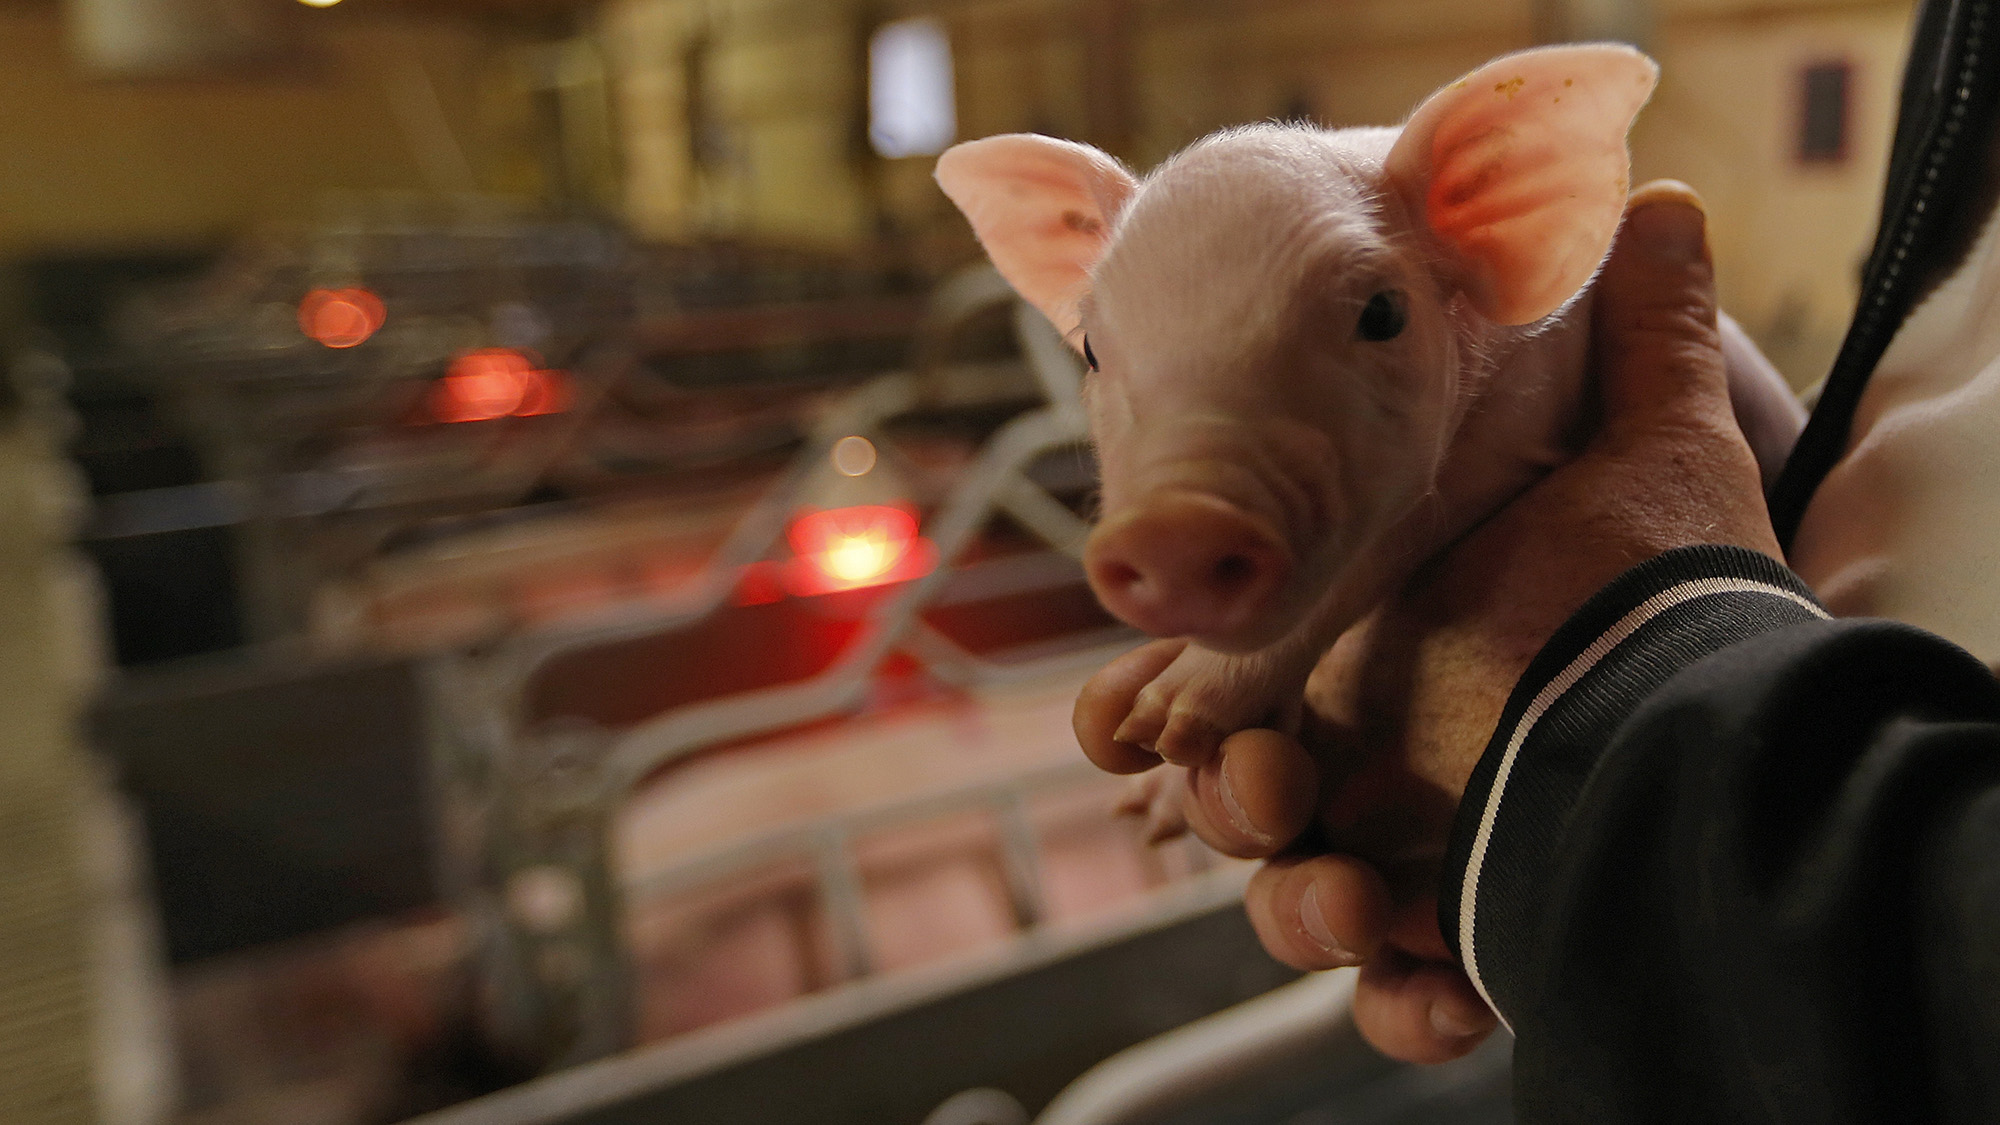 Laurent Ulrich holds a day-old piglet in the nursery part of his pig farm in Kleinfrankenheim, near Strasbourg, France, August 19, 2015. A price boycott by French meat processing firms against higher pork prices threatens to derail a government plan to support angry livestock farmers, who blockaded roads last month.  REUTERS/Vincent Kessler     TPX IMAGES OF THE DAY  - RTX1OSMD